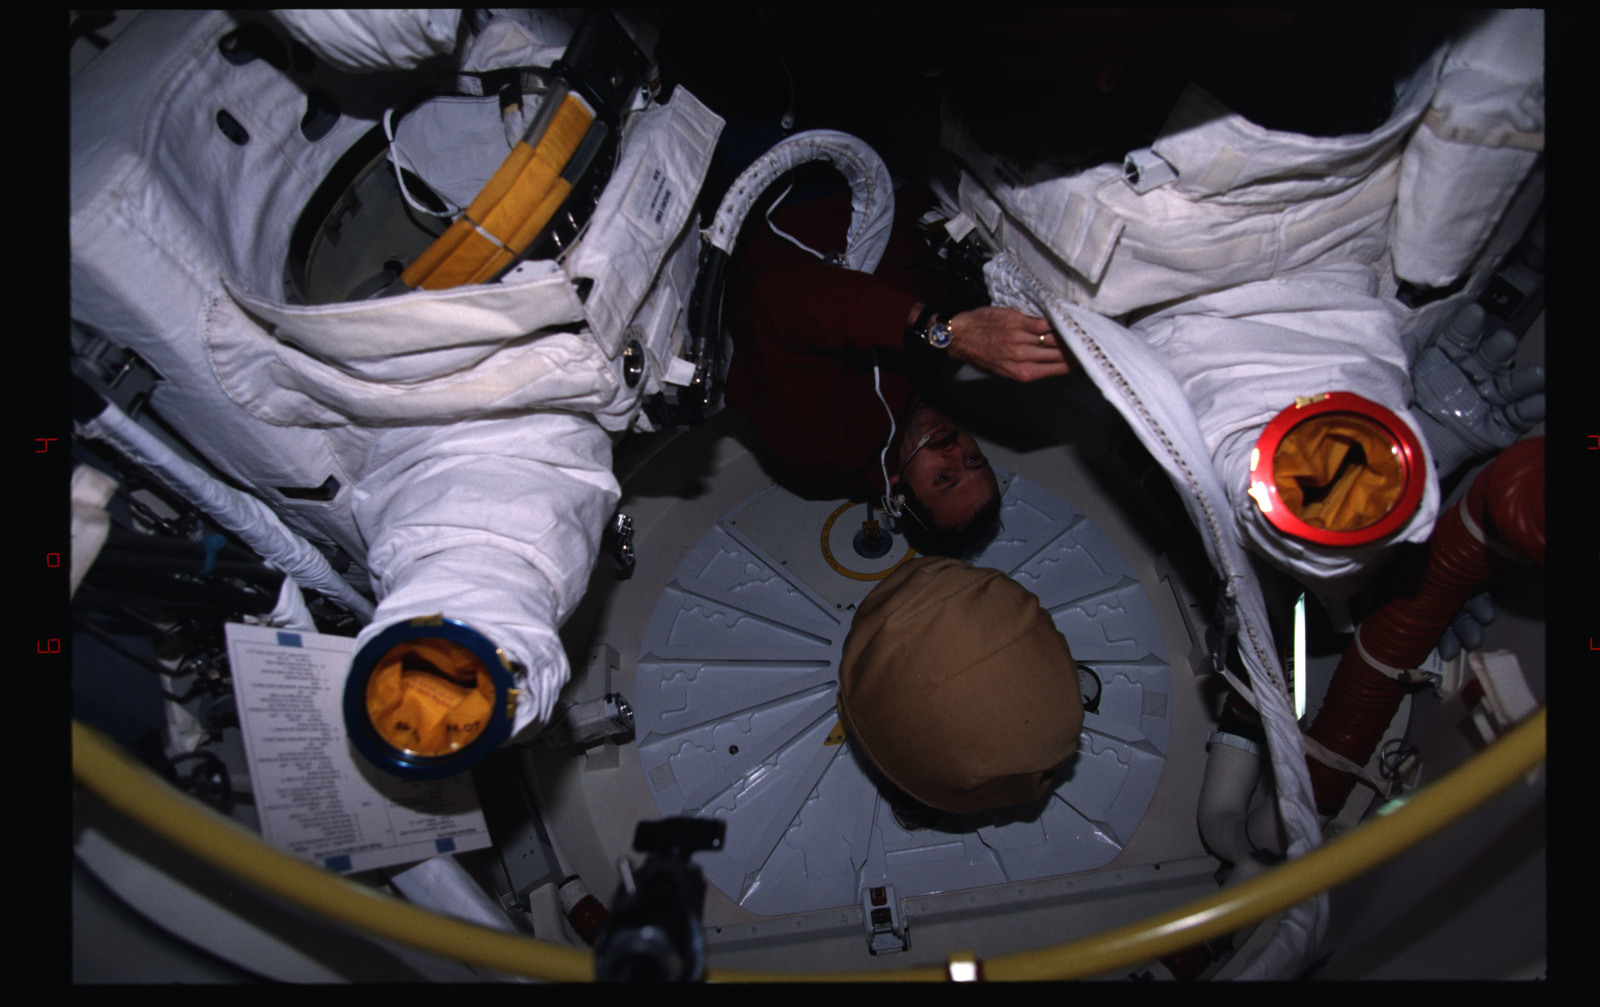 STS082-333-014 - STS-082 - Crewmember activities in the shuttle middeck and flight deck